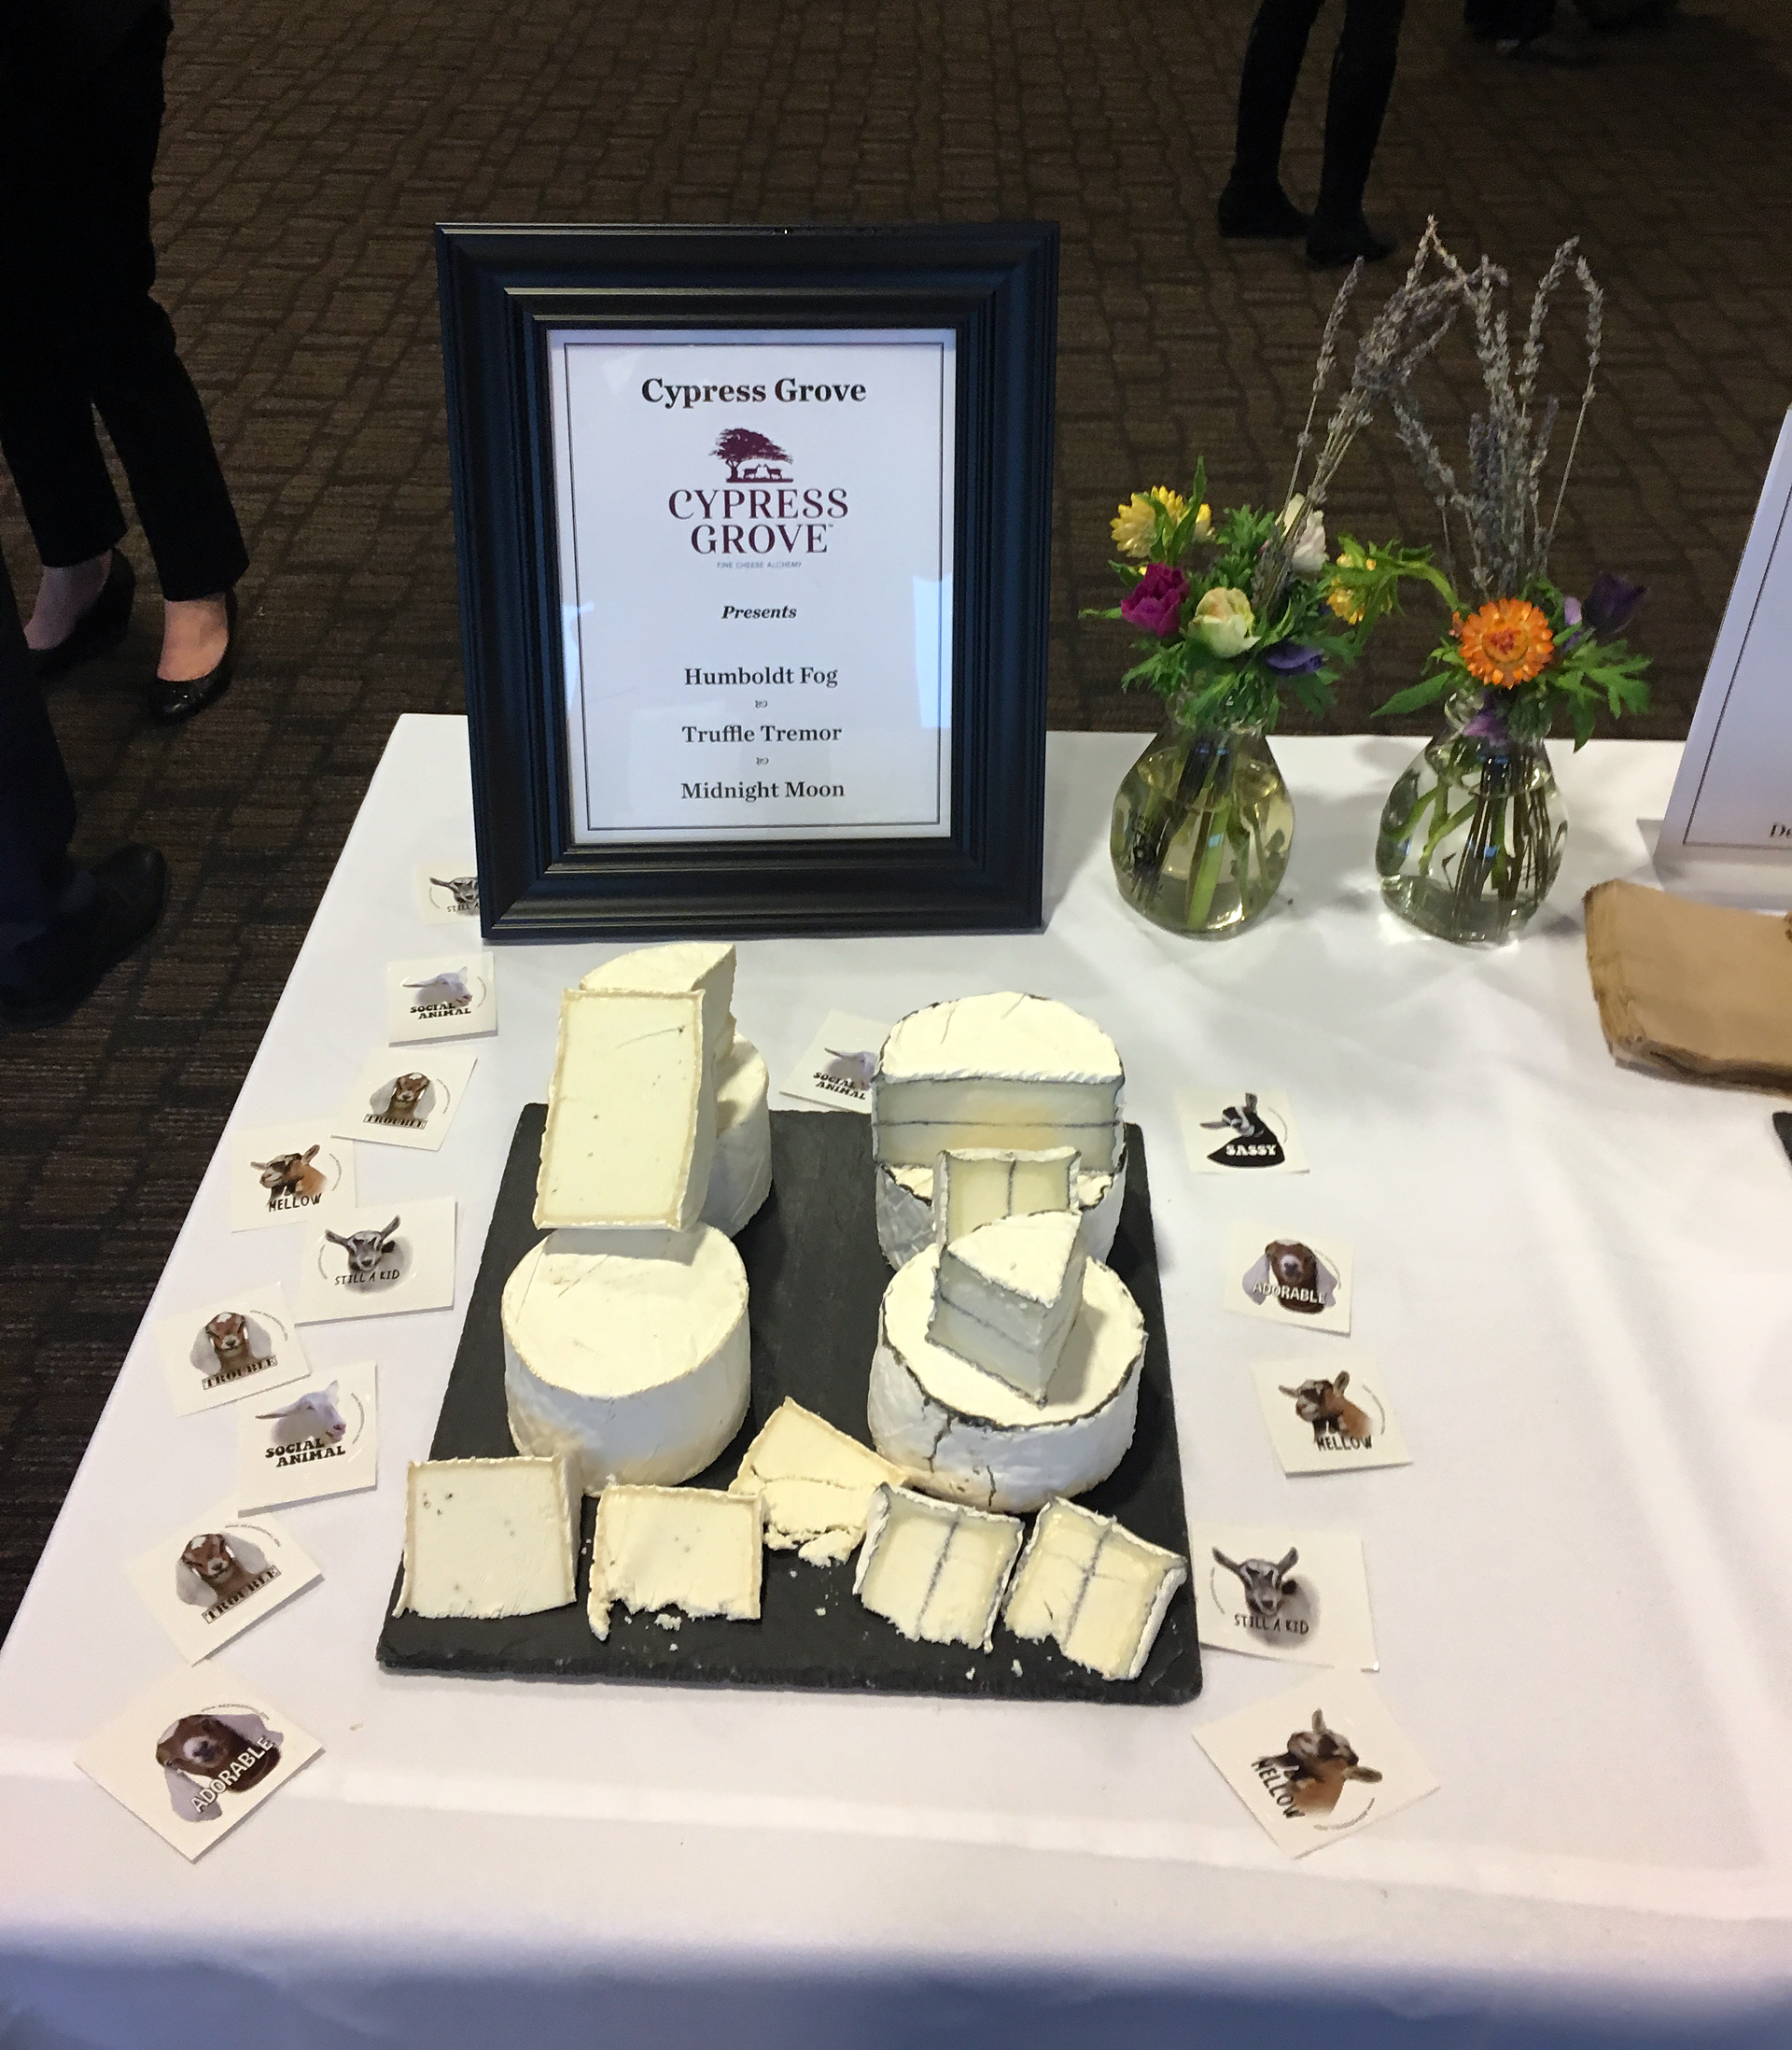 Cypress Grove Cheese: A display of 3 cheeses from Cypress Grove